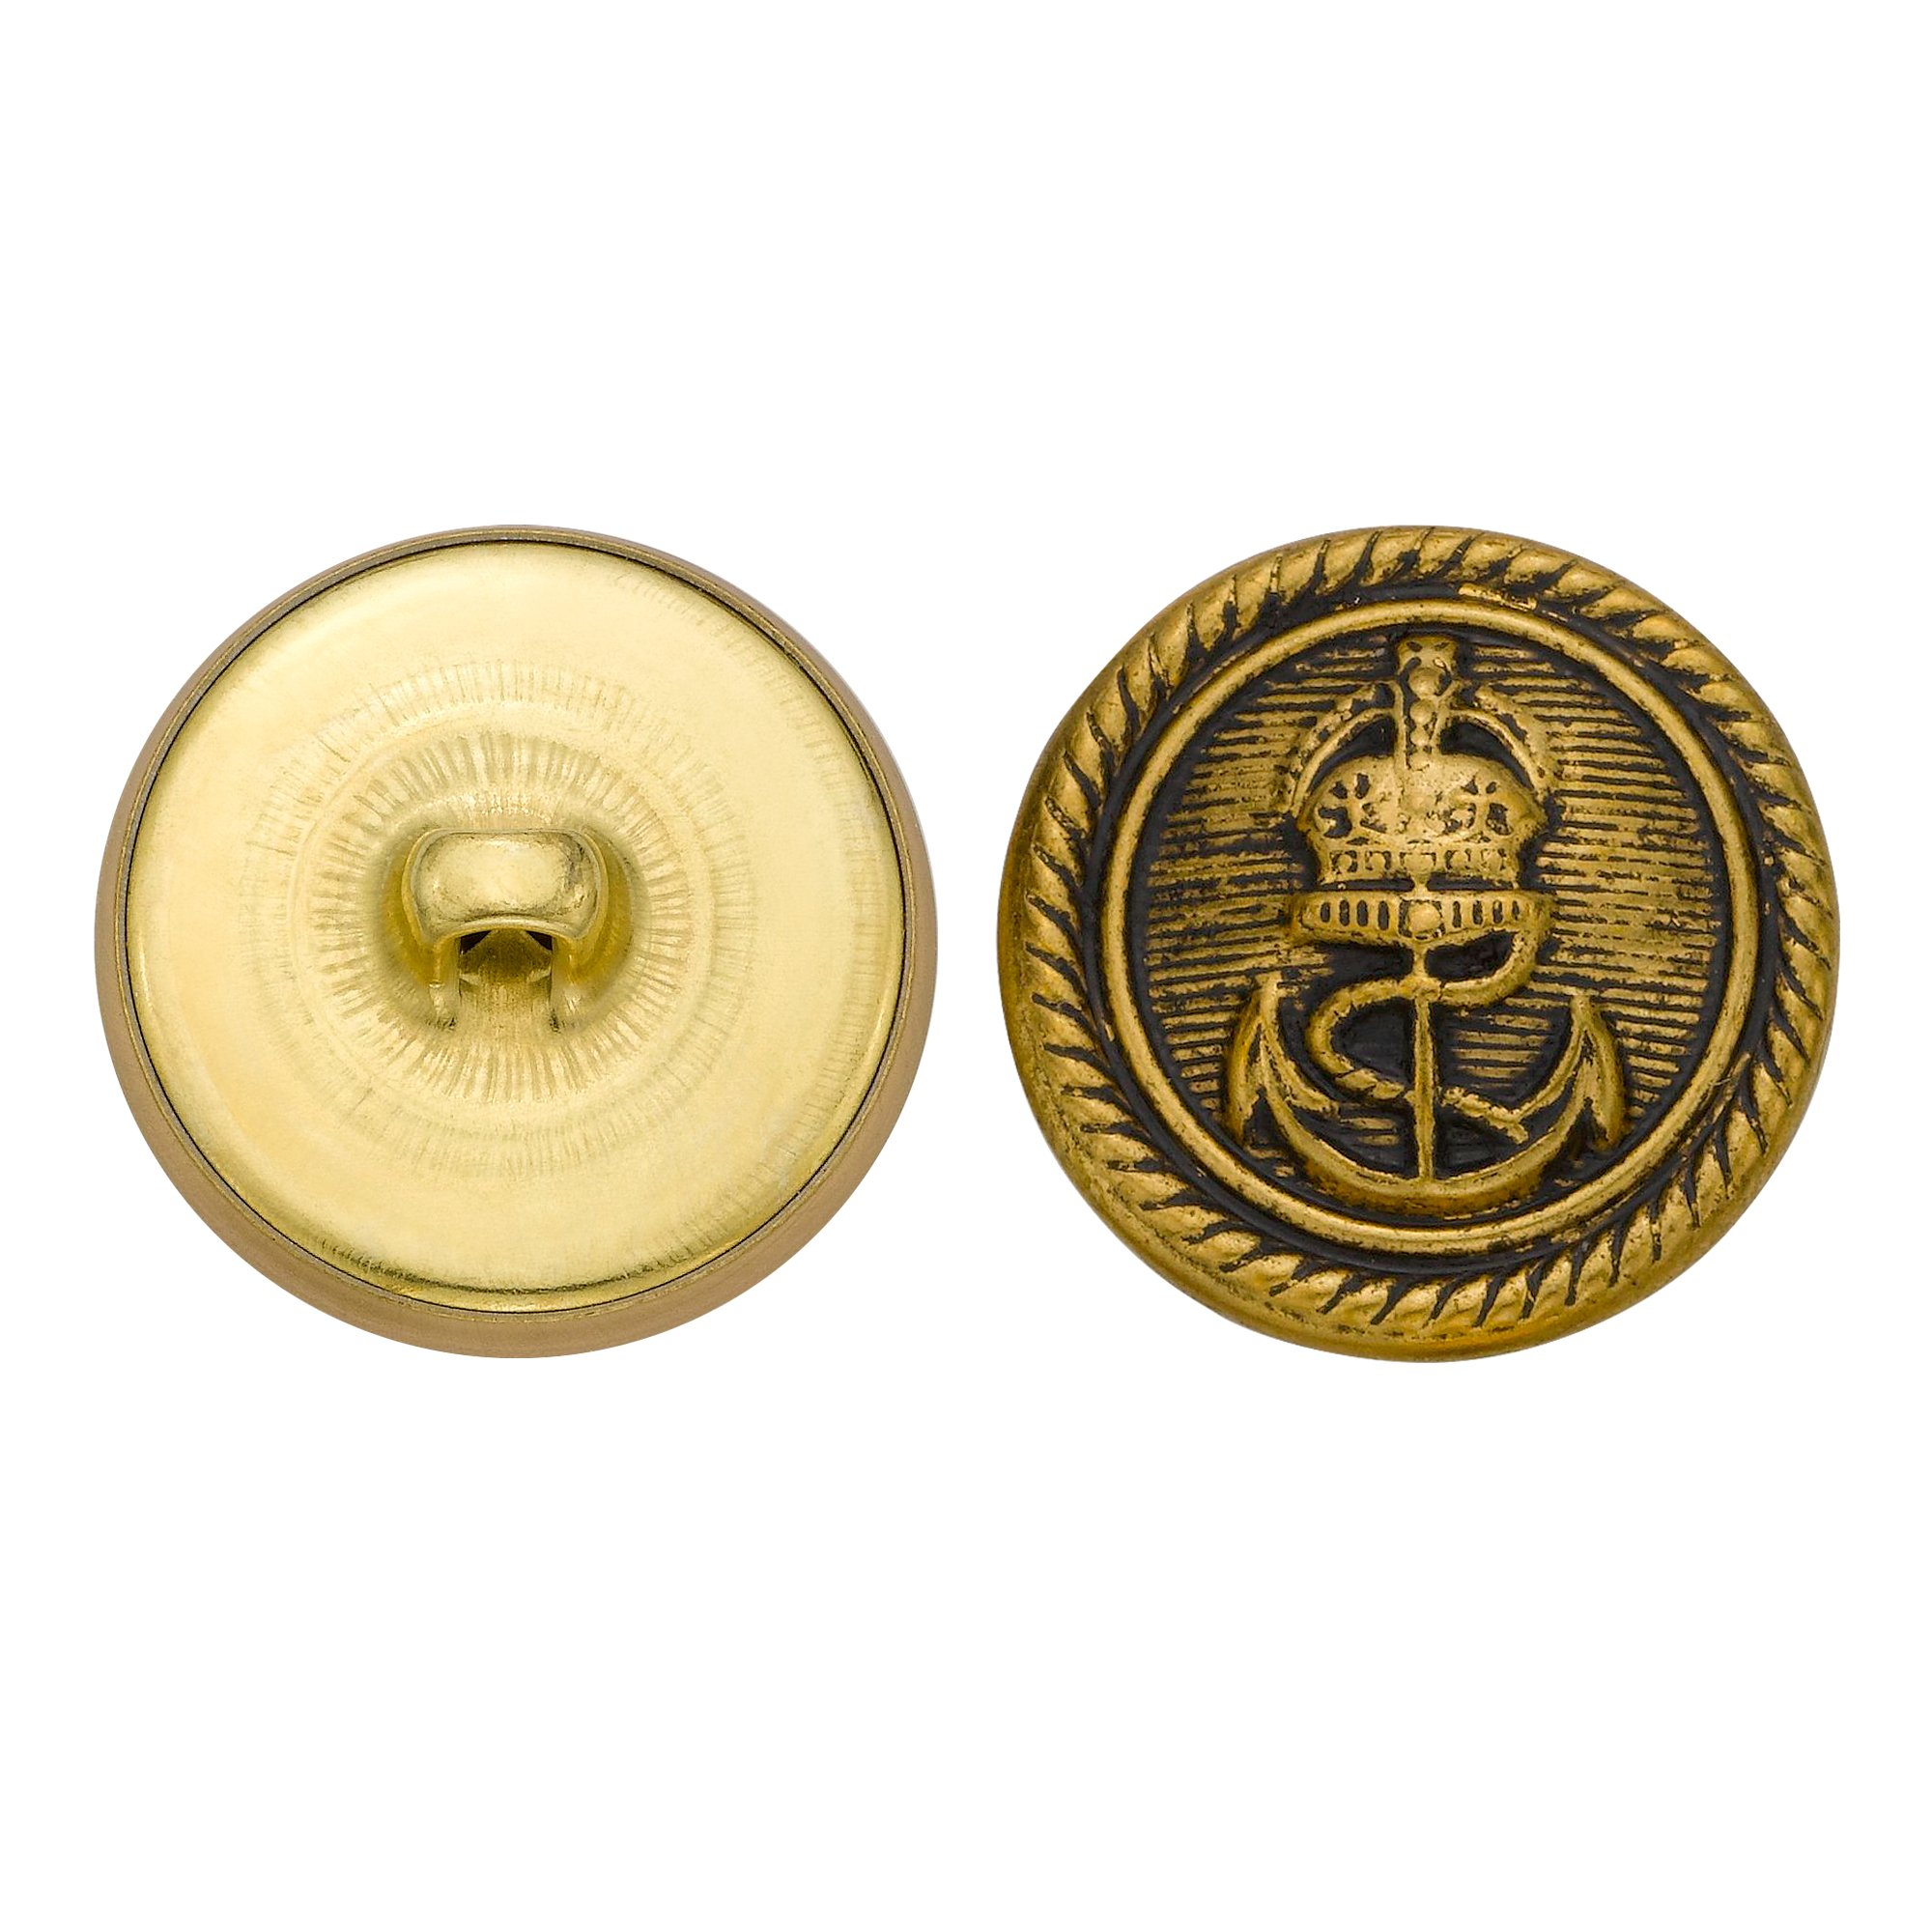 C&C Metal Products 5269 Royal Anchor Metal Button, Size 36 Ligne, Antique Gold, 36-Pack